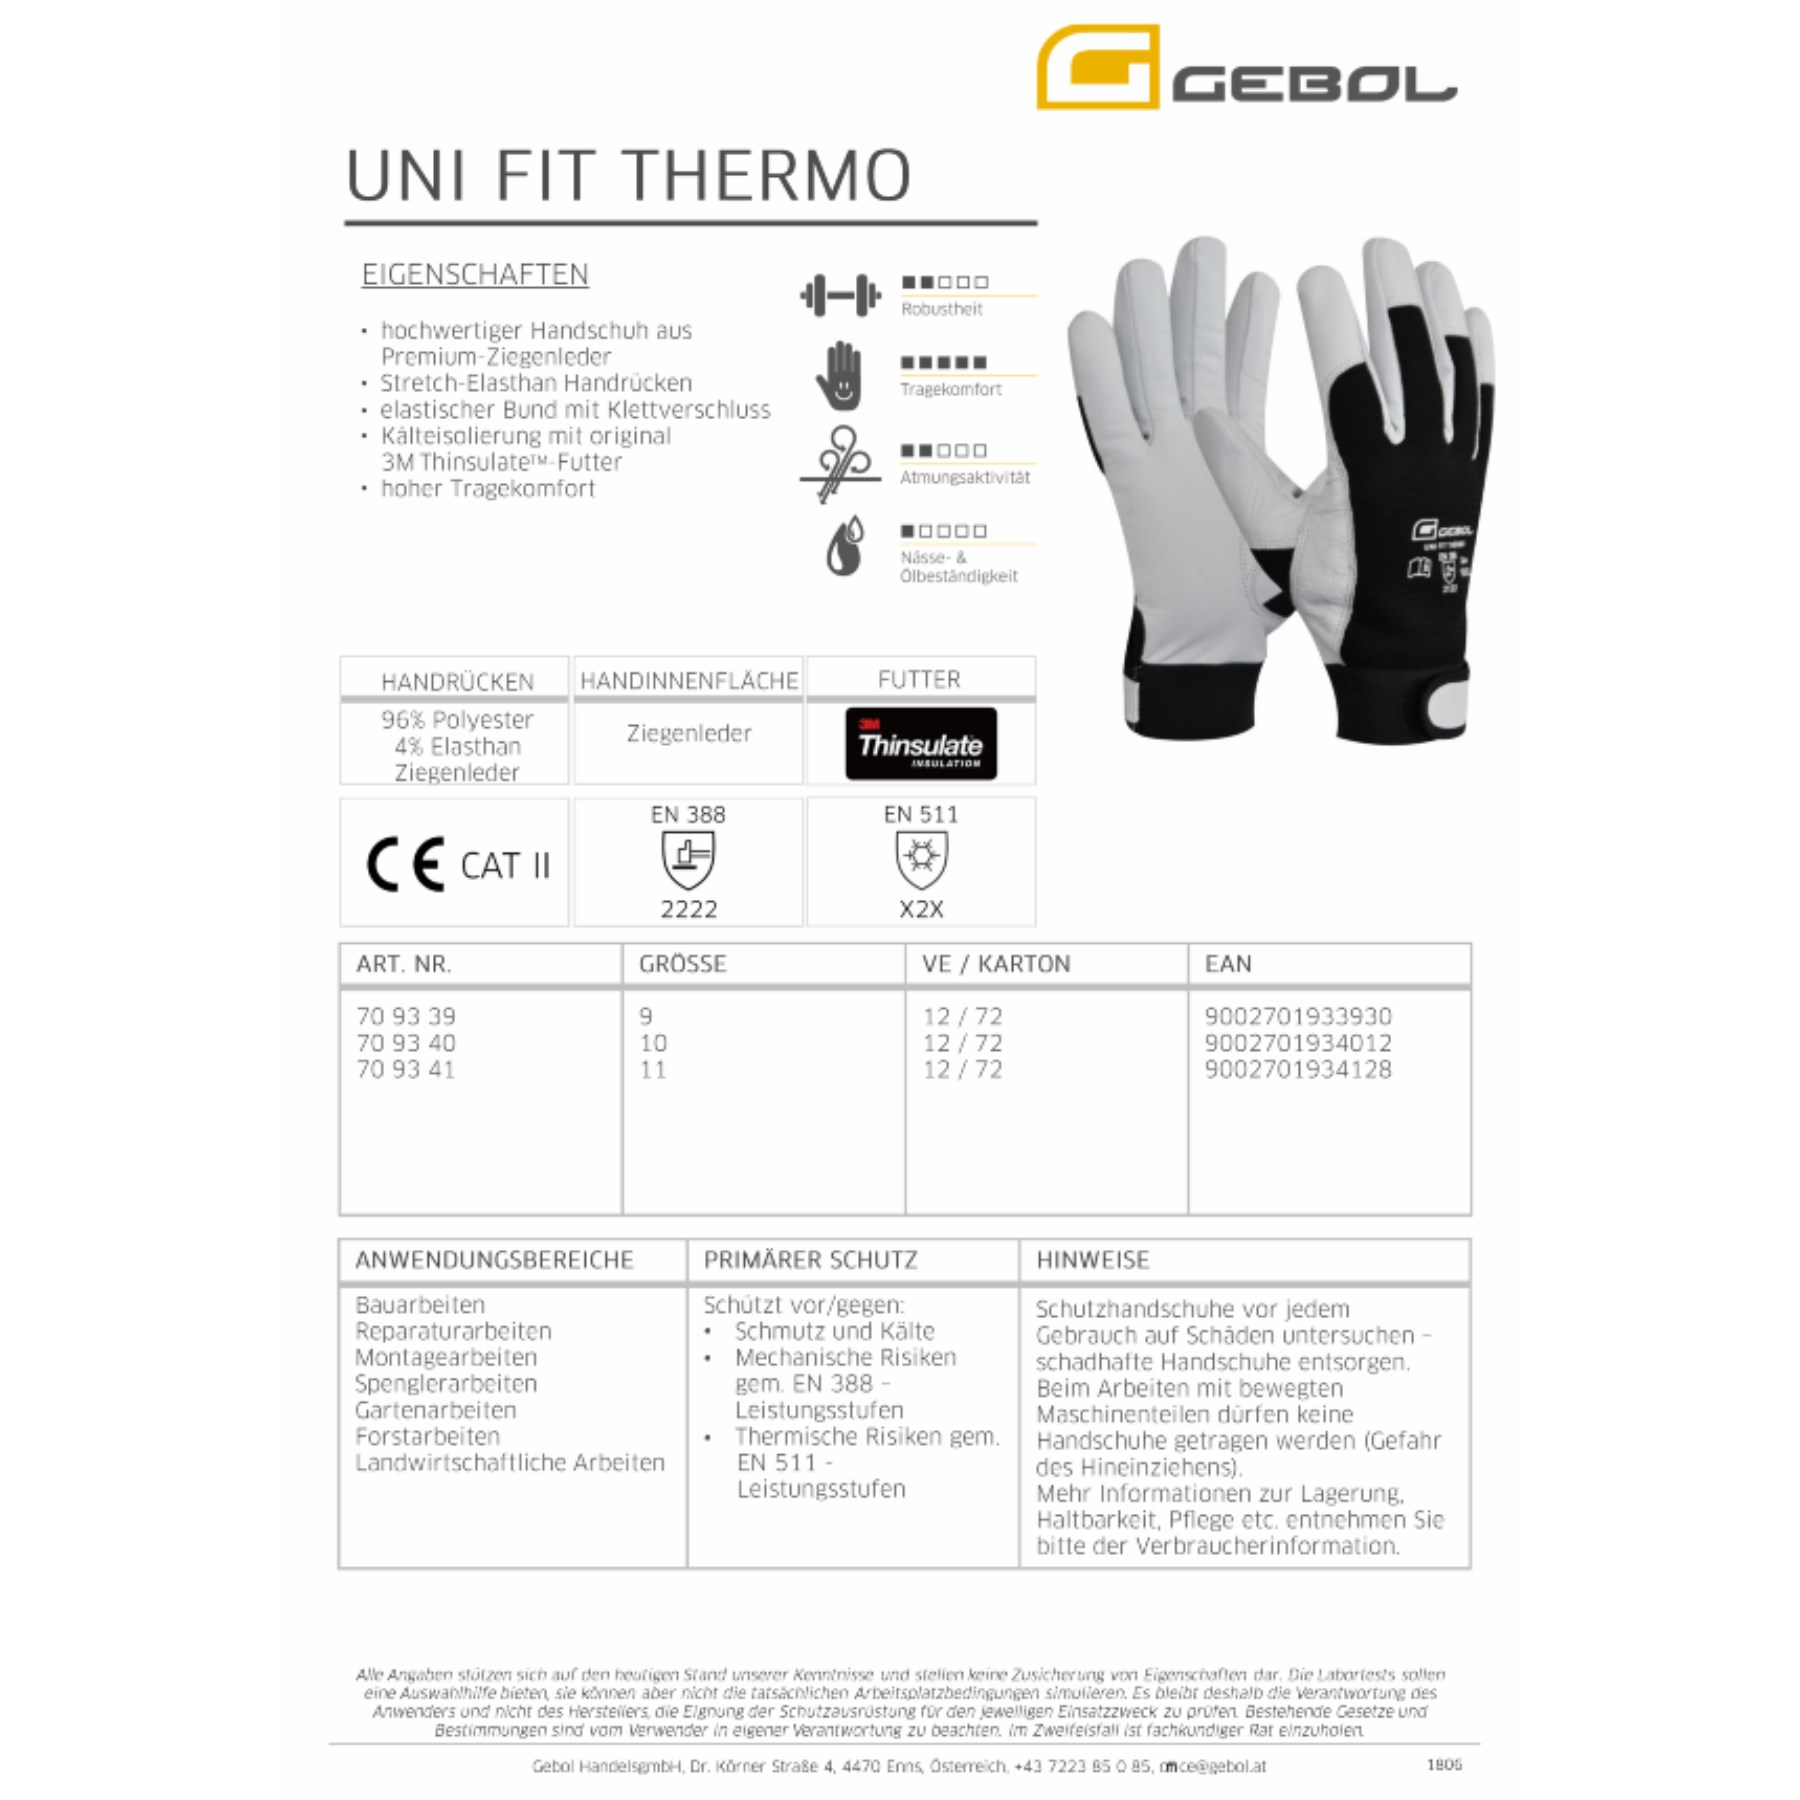 1236804 - Arbeitshandschuh Thermo Uni Fit